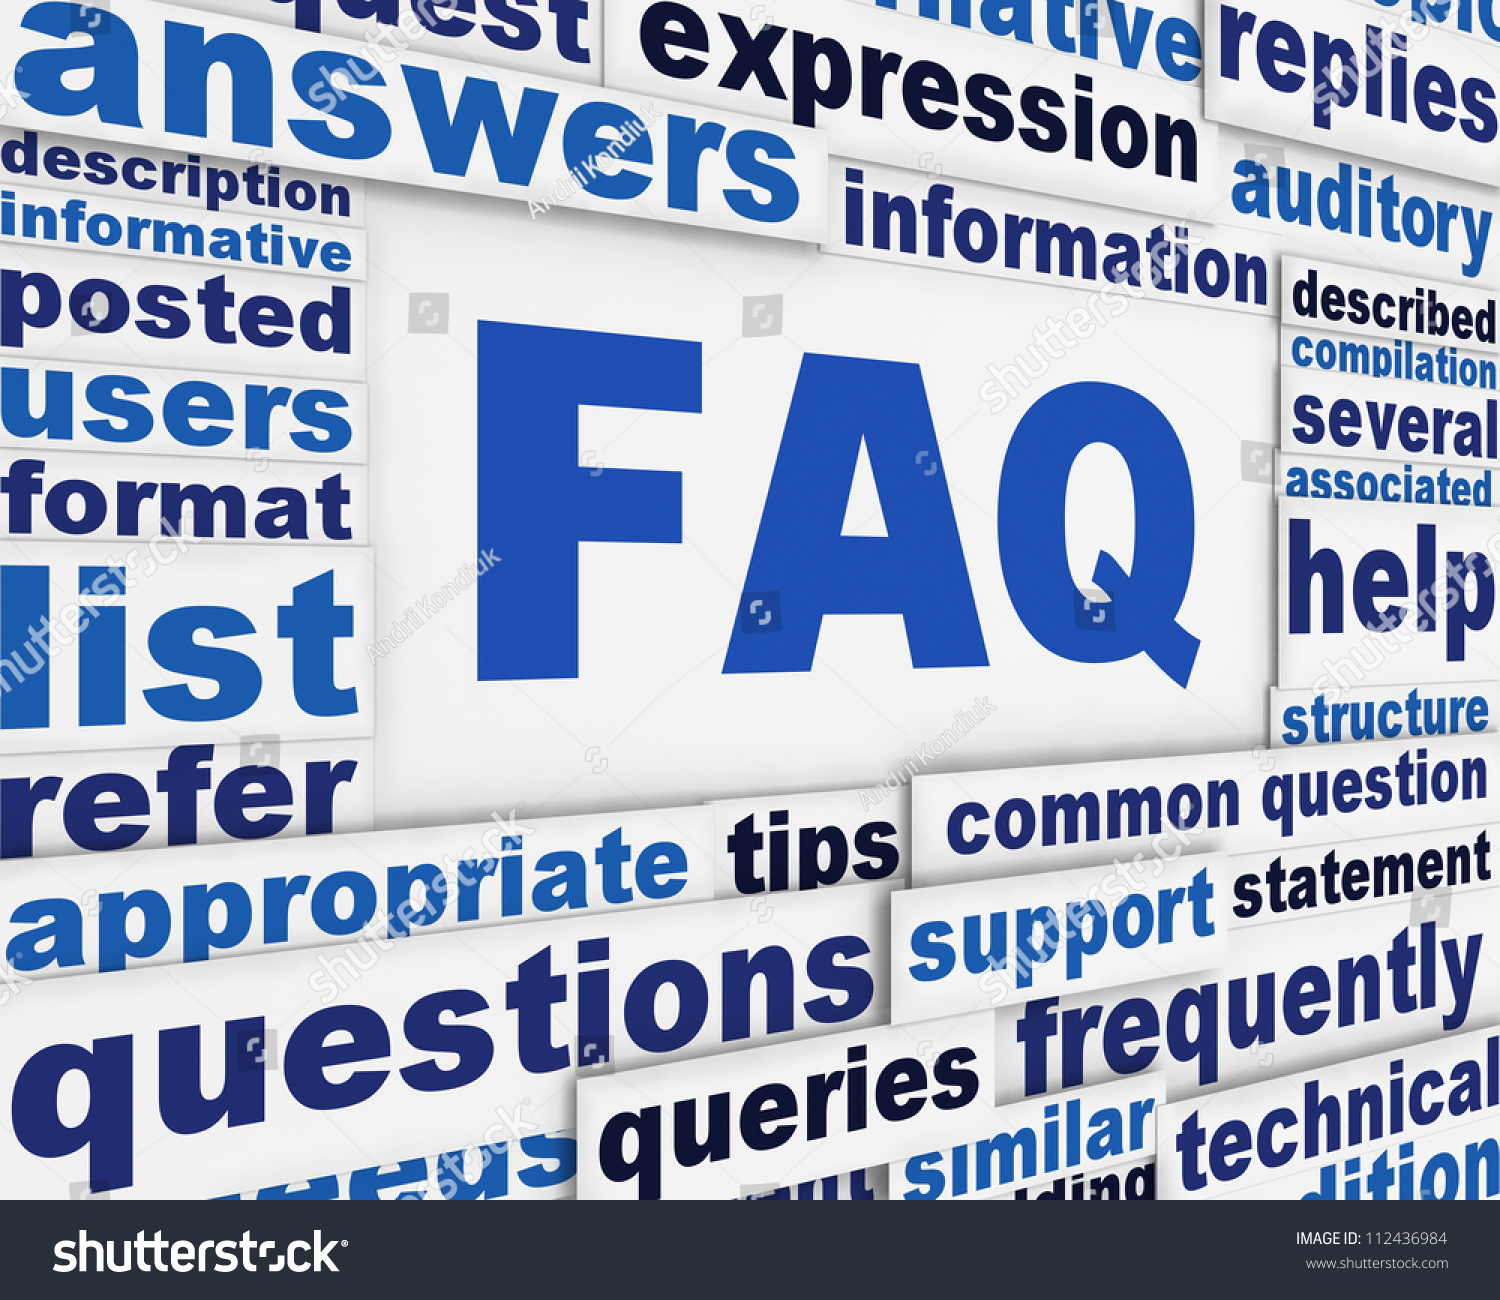 stock images similar to id 222285793 quiz text in speech bubbles faq poster conceptual design questions and answers message background stock photo